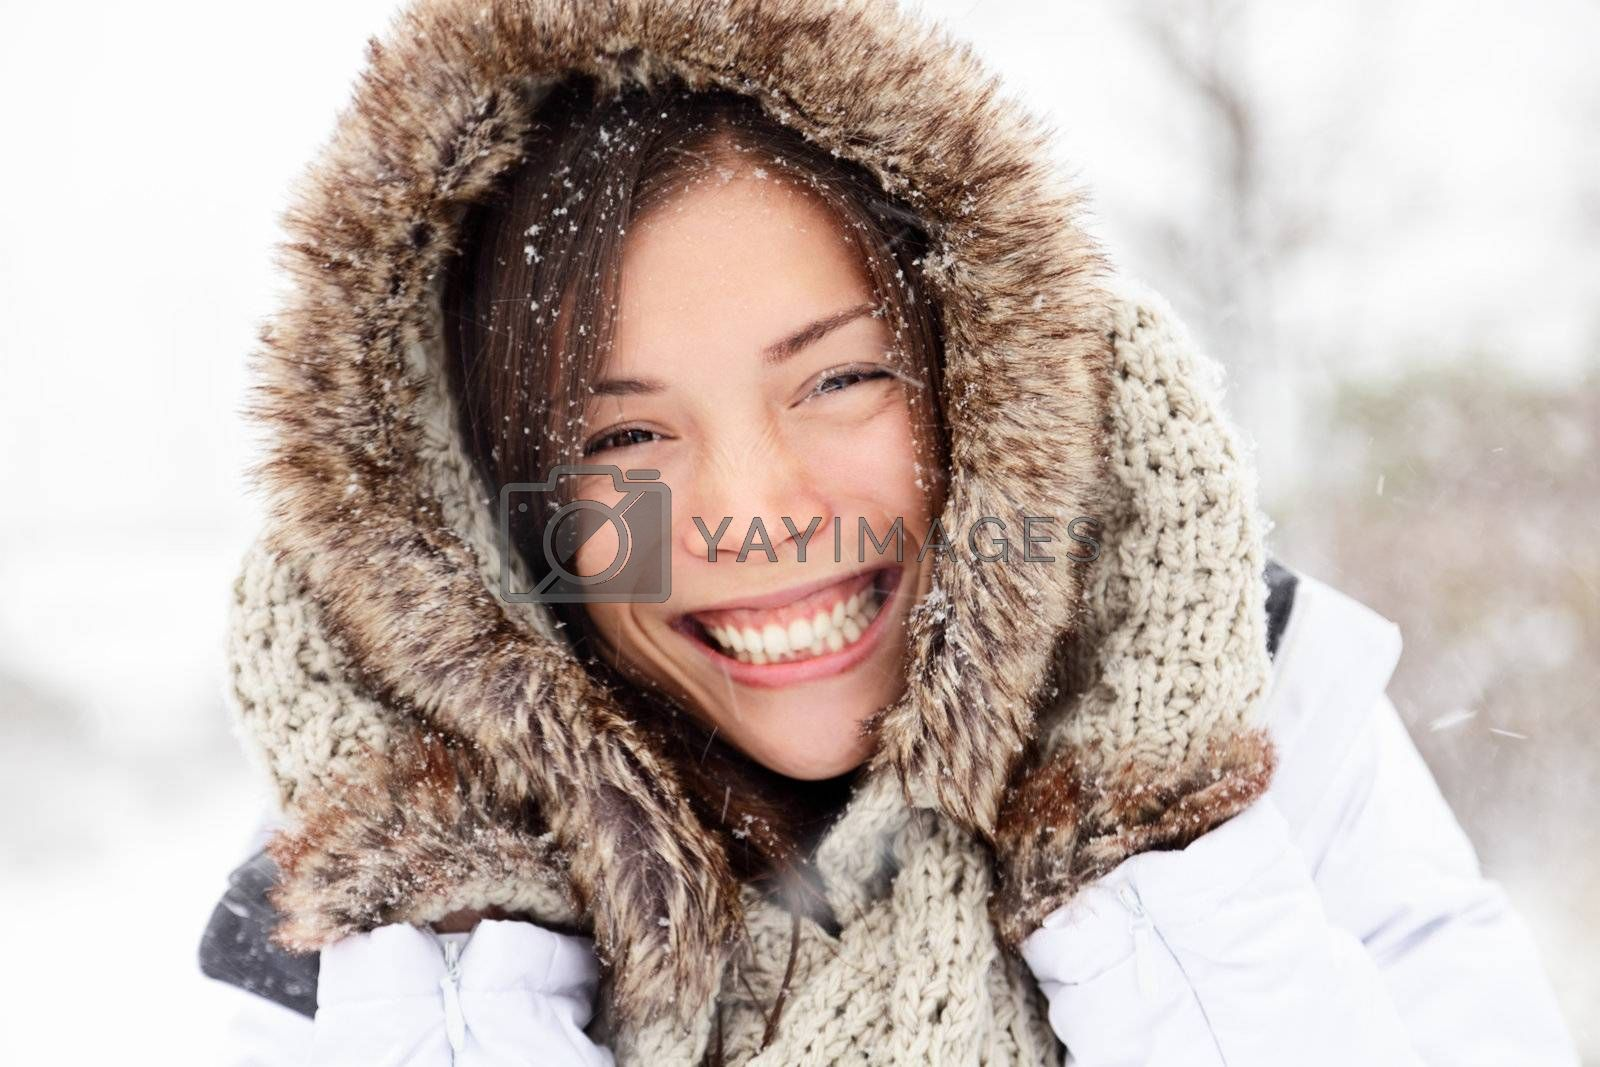 winter woman happy outside in snow smiling joyful on snowing winter day. Cute closeup portrait of beautiful mixed race Caucasian Asian girl cheerful and excited outdoors.